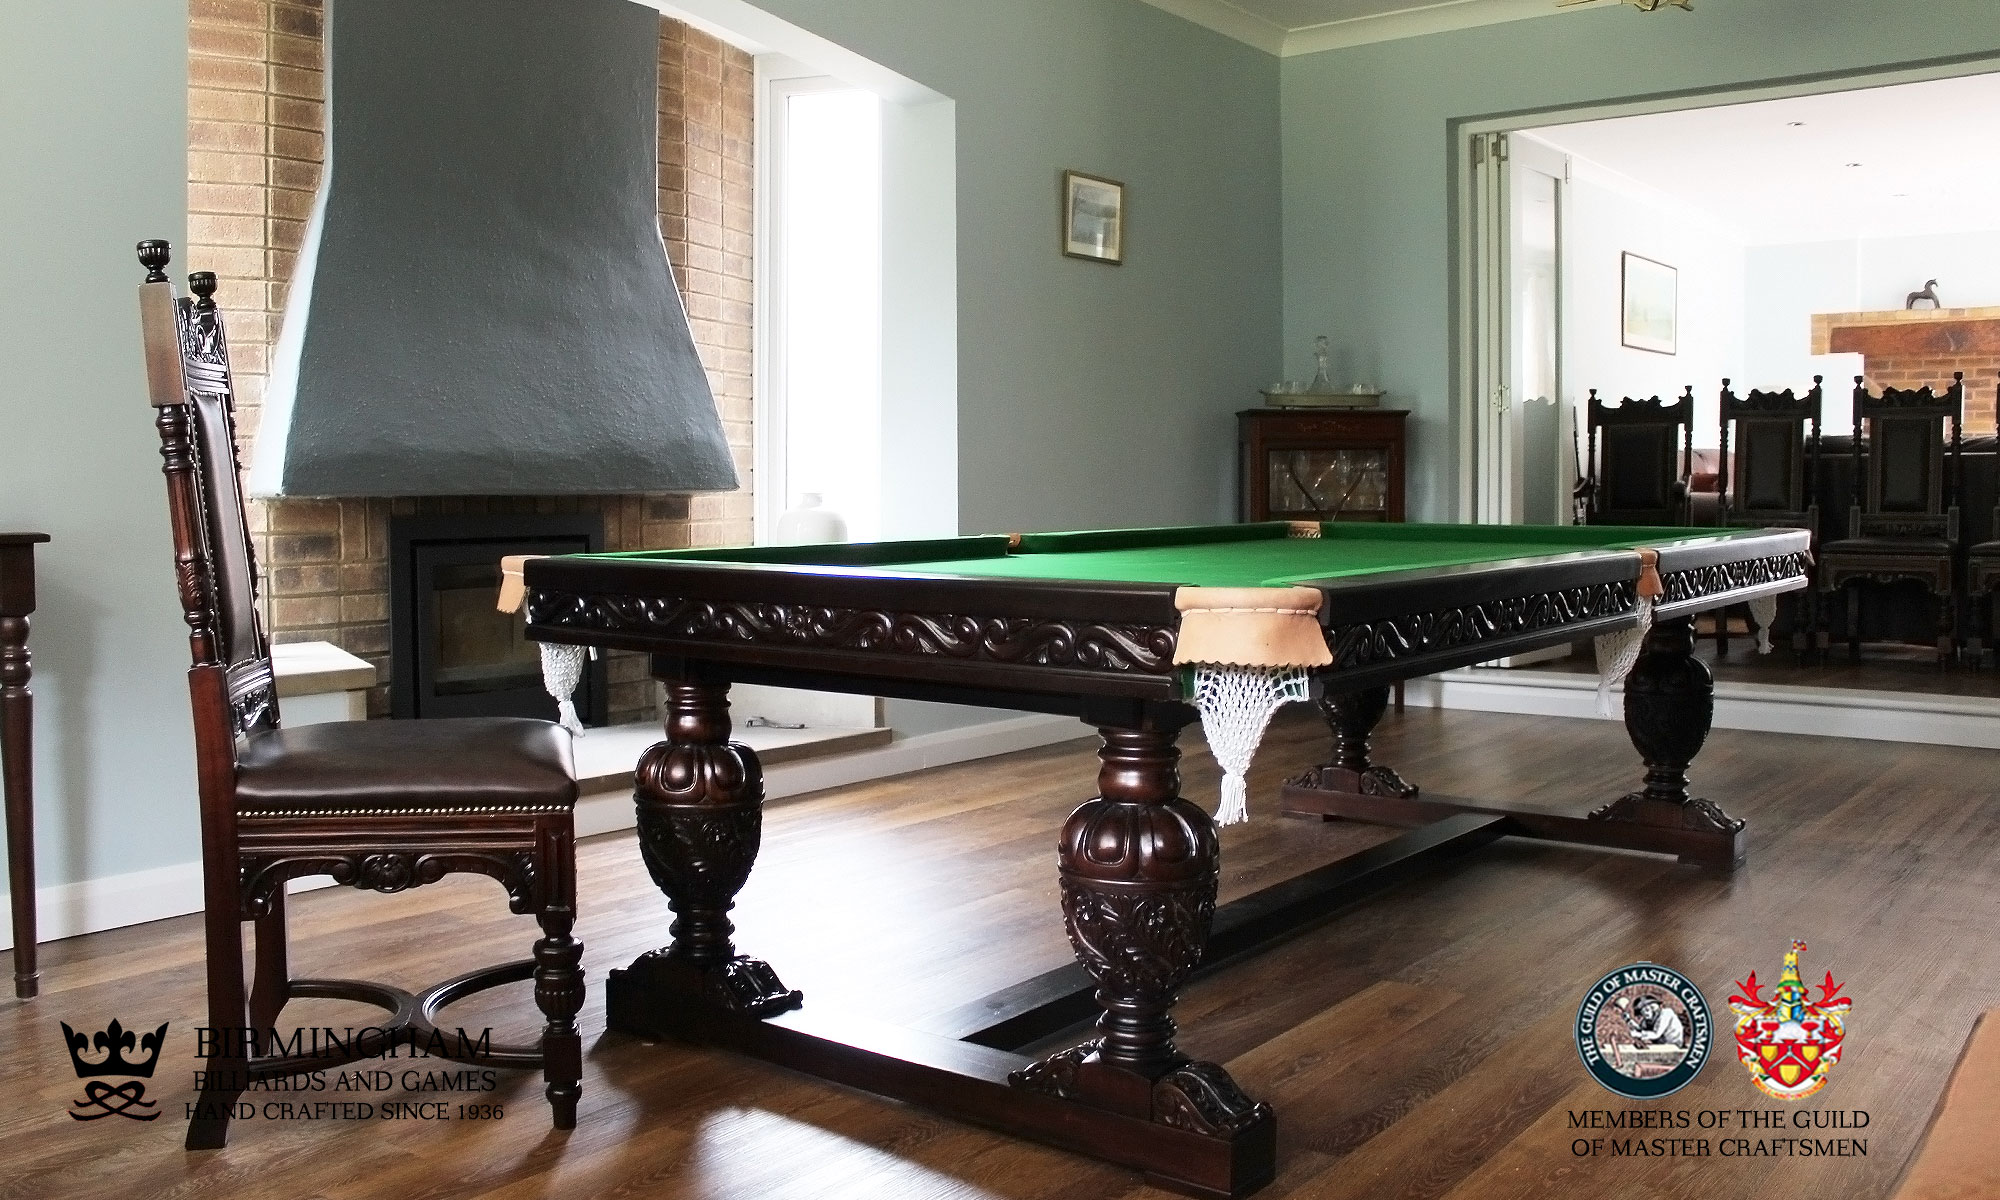 The Balmoral-hand carved pool table, championship green baize, end view